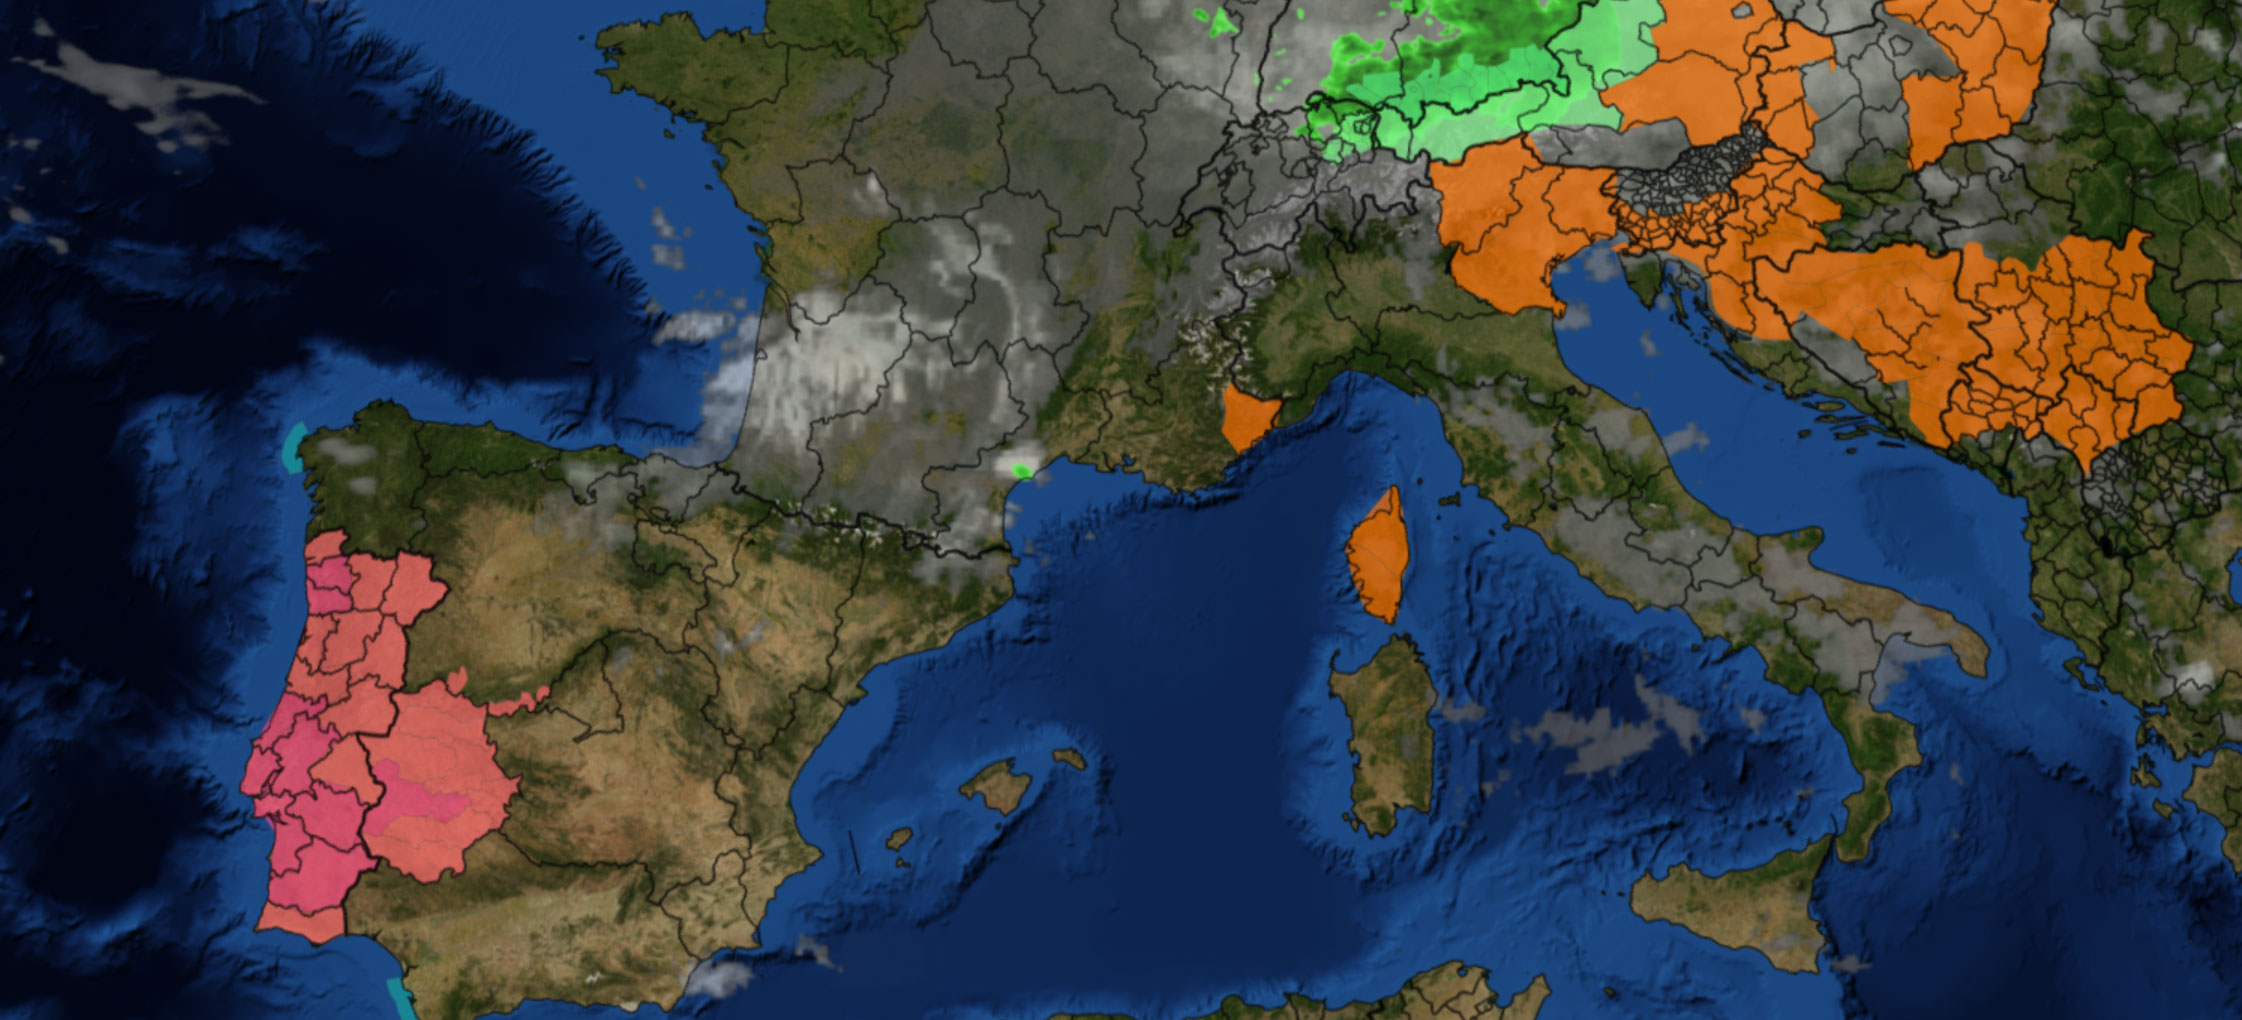 Radar Image of Europe with Weather layers